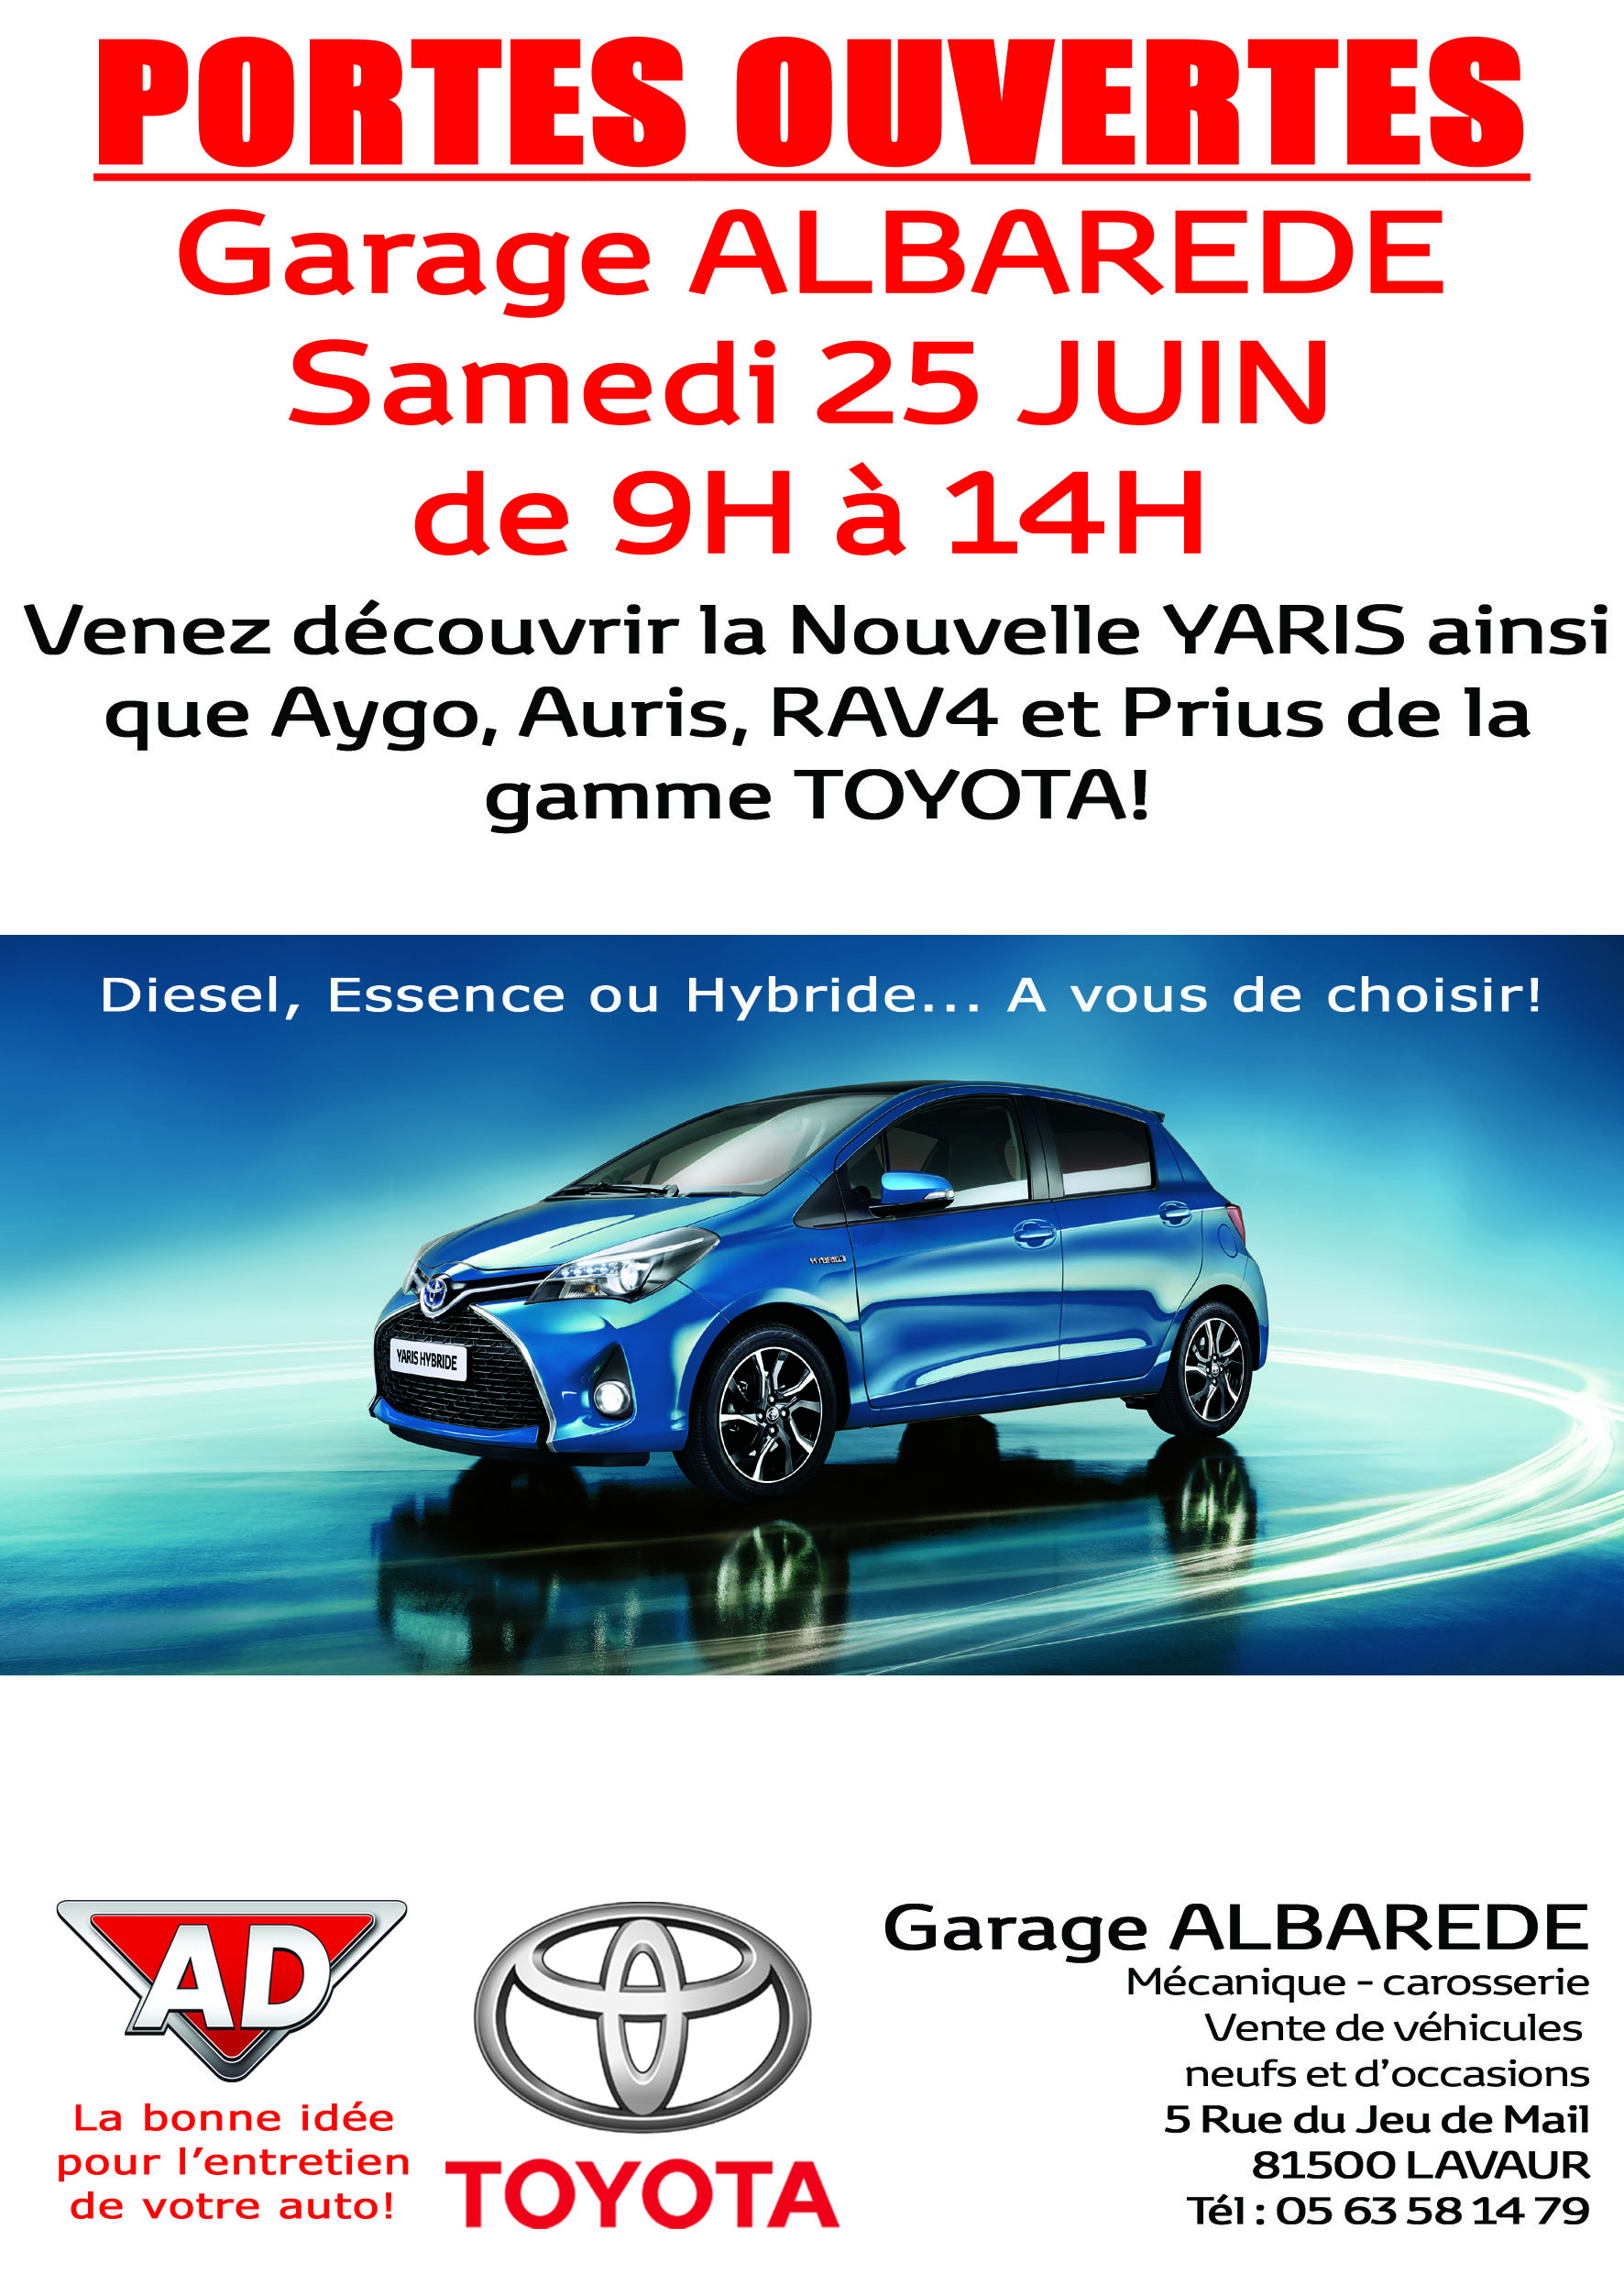 Toyota garage albarede journ e portes ouvertes blog for Garage puech automobiles millau